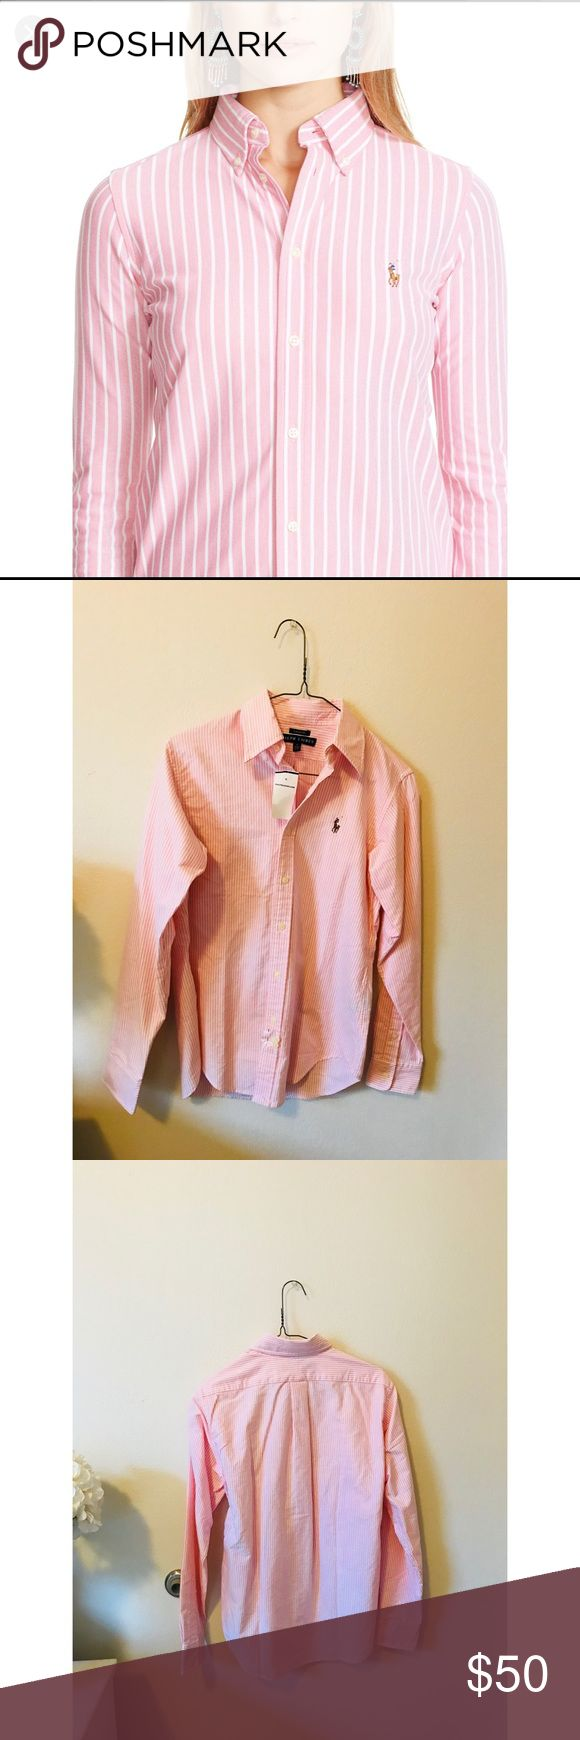 NWT Polo Ralph Lauren Knit Oxford Polo Ralph Lauren Knit Oxford Button Down. Color is white and light pink stripes. Classic fit. NEW WITH TAGS, never been worn before brand new. Women's size 4. Comment with questions. Will ship out same day of purchase ❤️ Polo by Ralph Lauren Tops Button Down Shirts